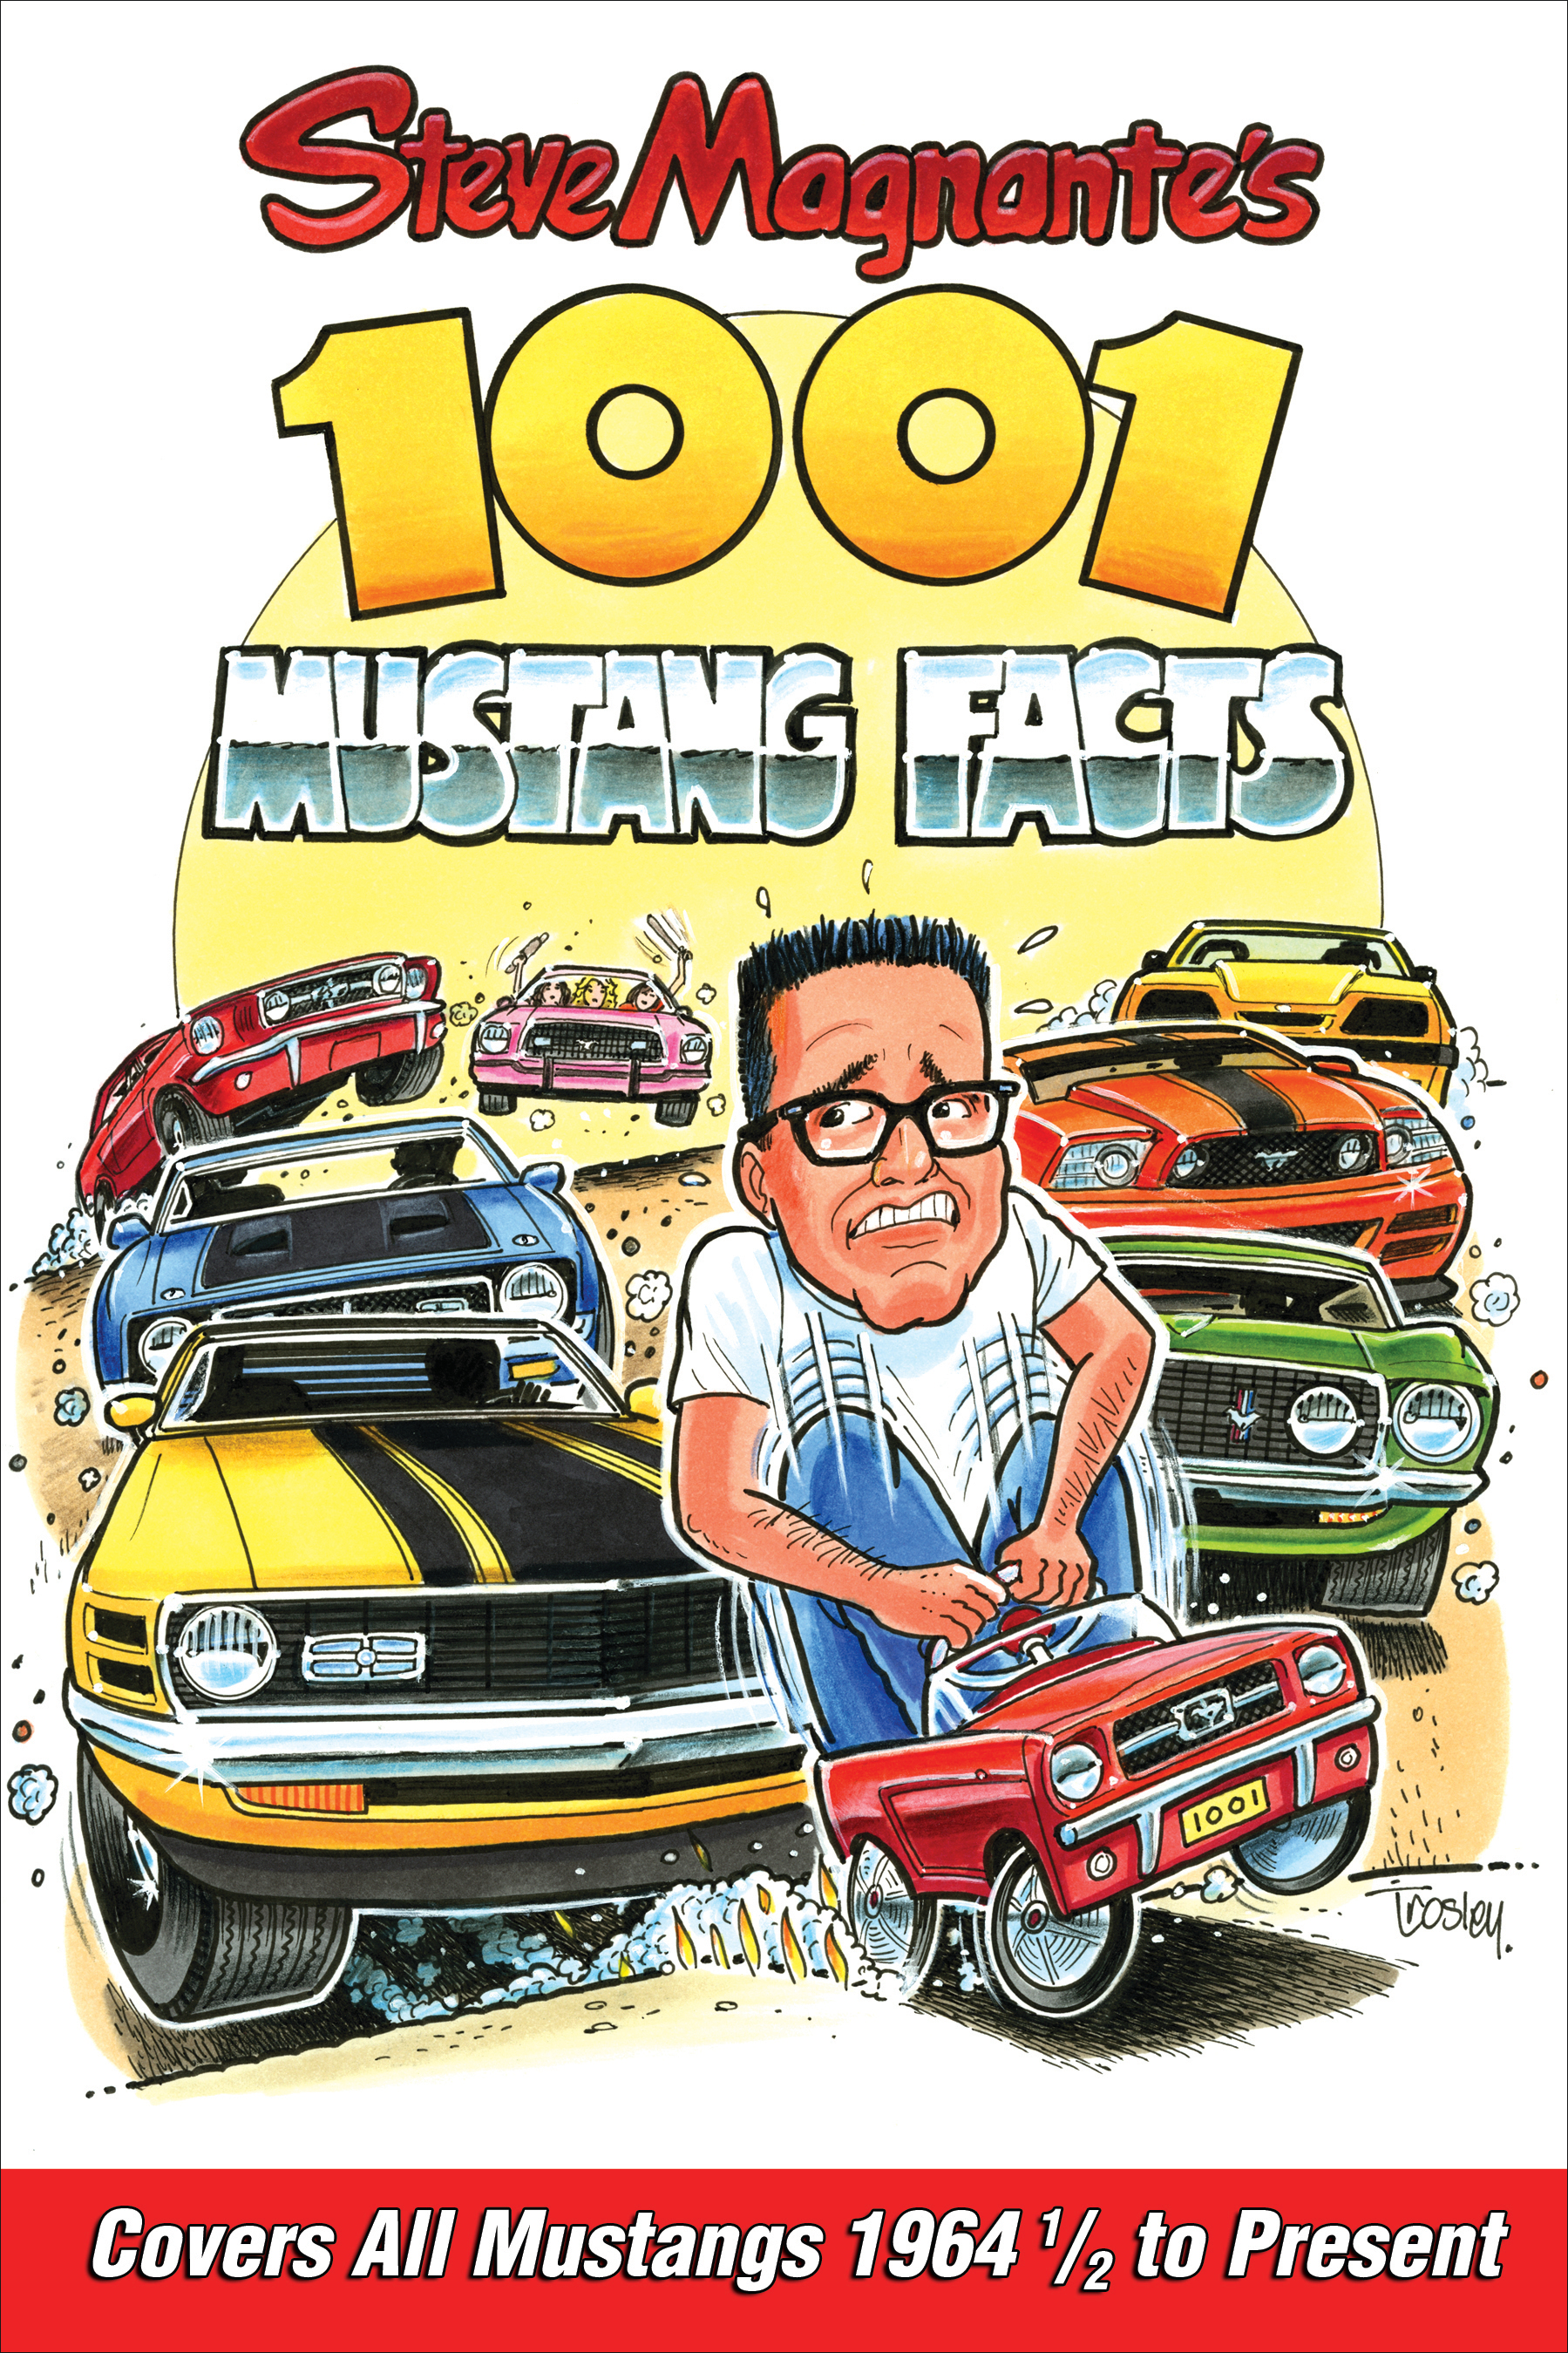 S-A Books CT563 Book, Steve Magnante's 1001 Mustang Facts, 336 Pages, Paperback, Each